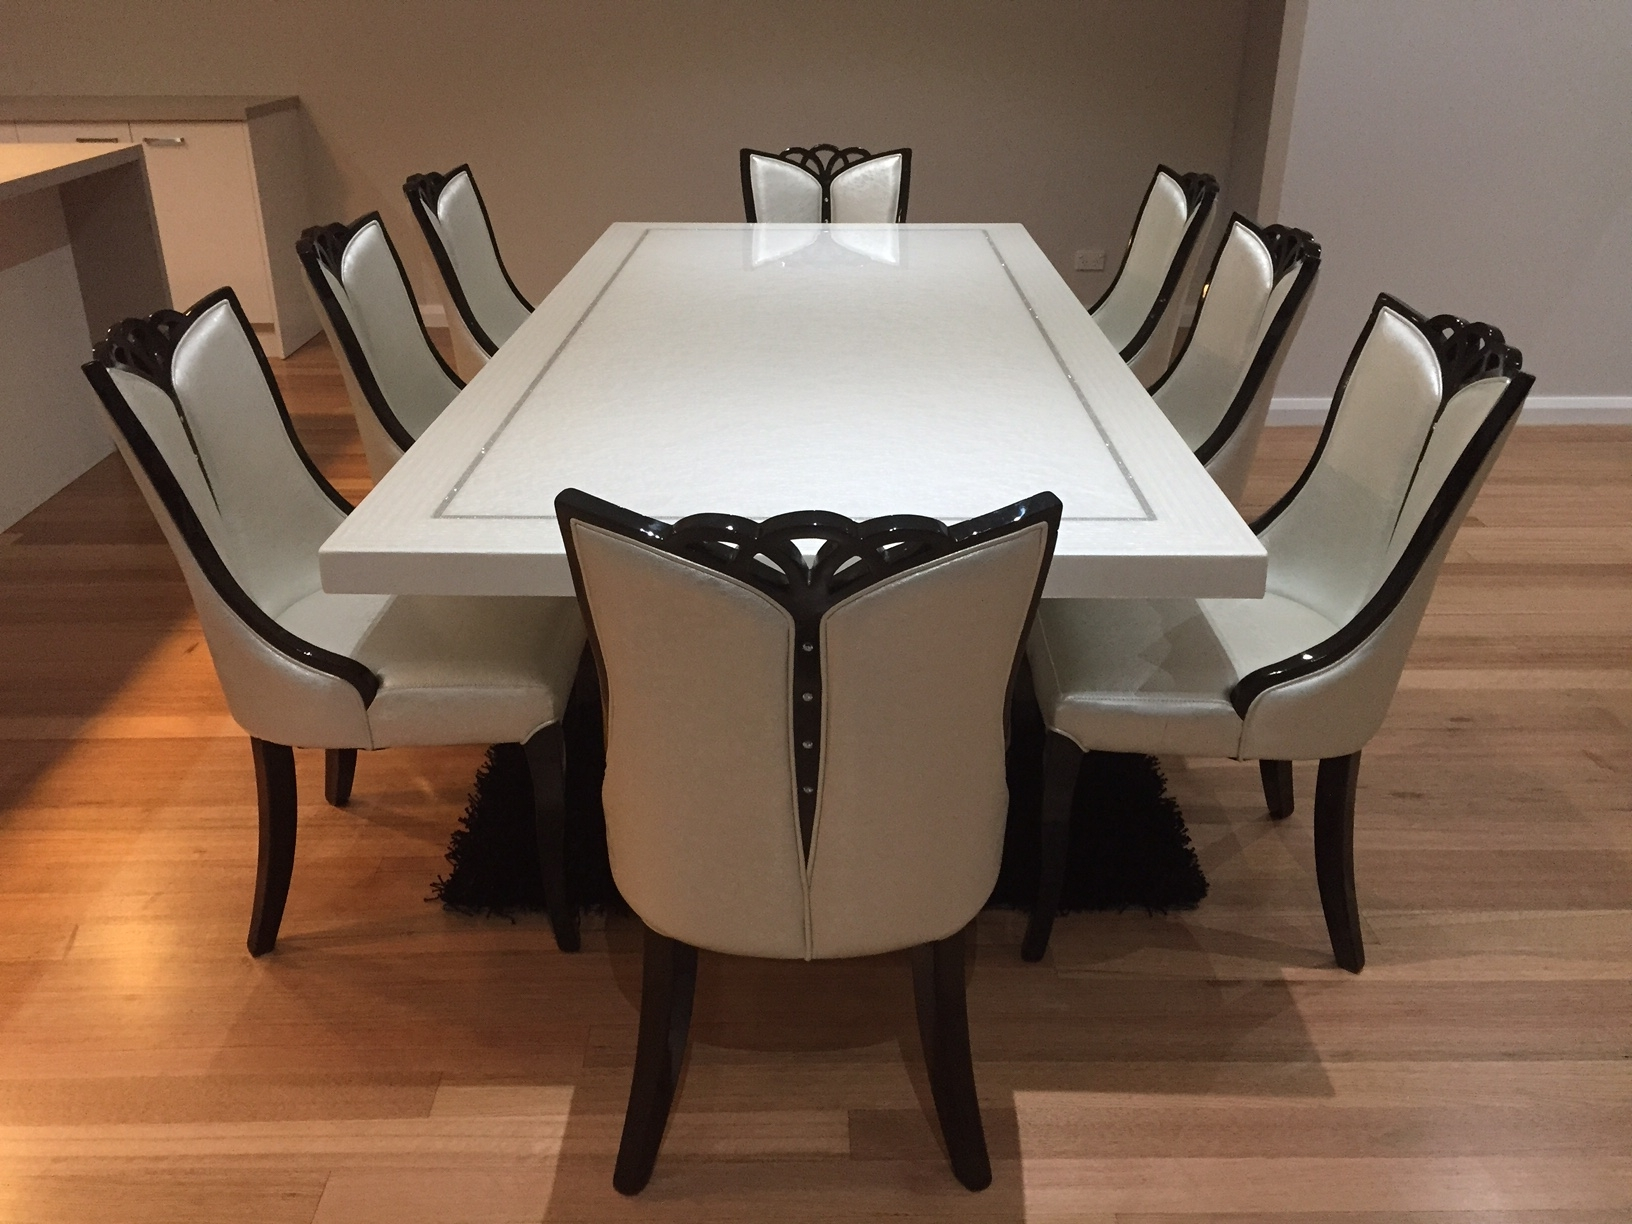 2018 Dining Tables For 8 For Bianca Marble Dining Table With 8 Chairs (View 5 of 25)